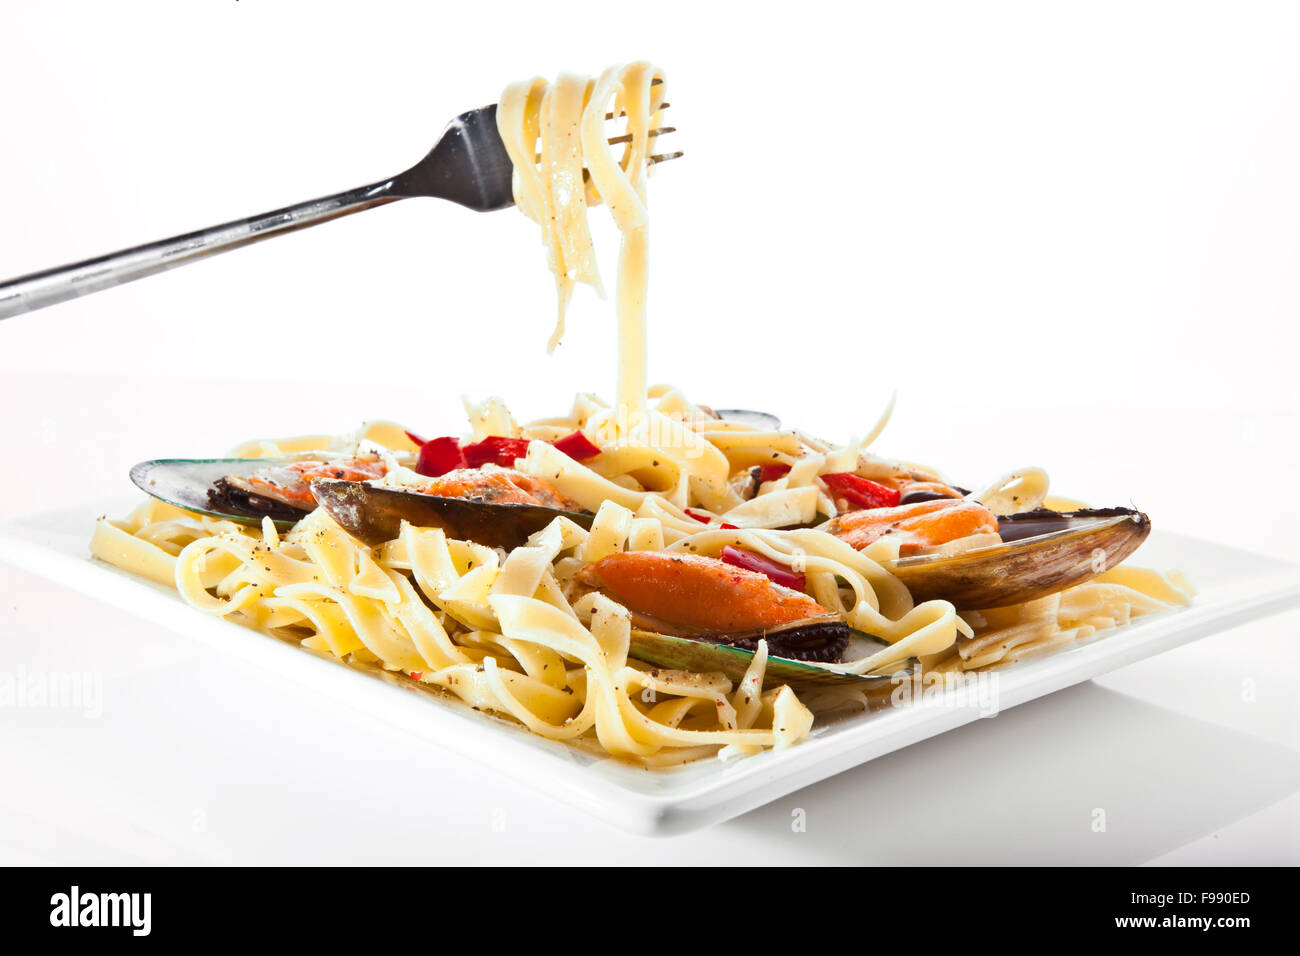 Pasta with mussels on white dish - Italian food - Stock Image